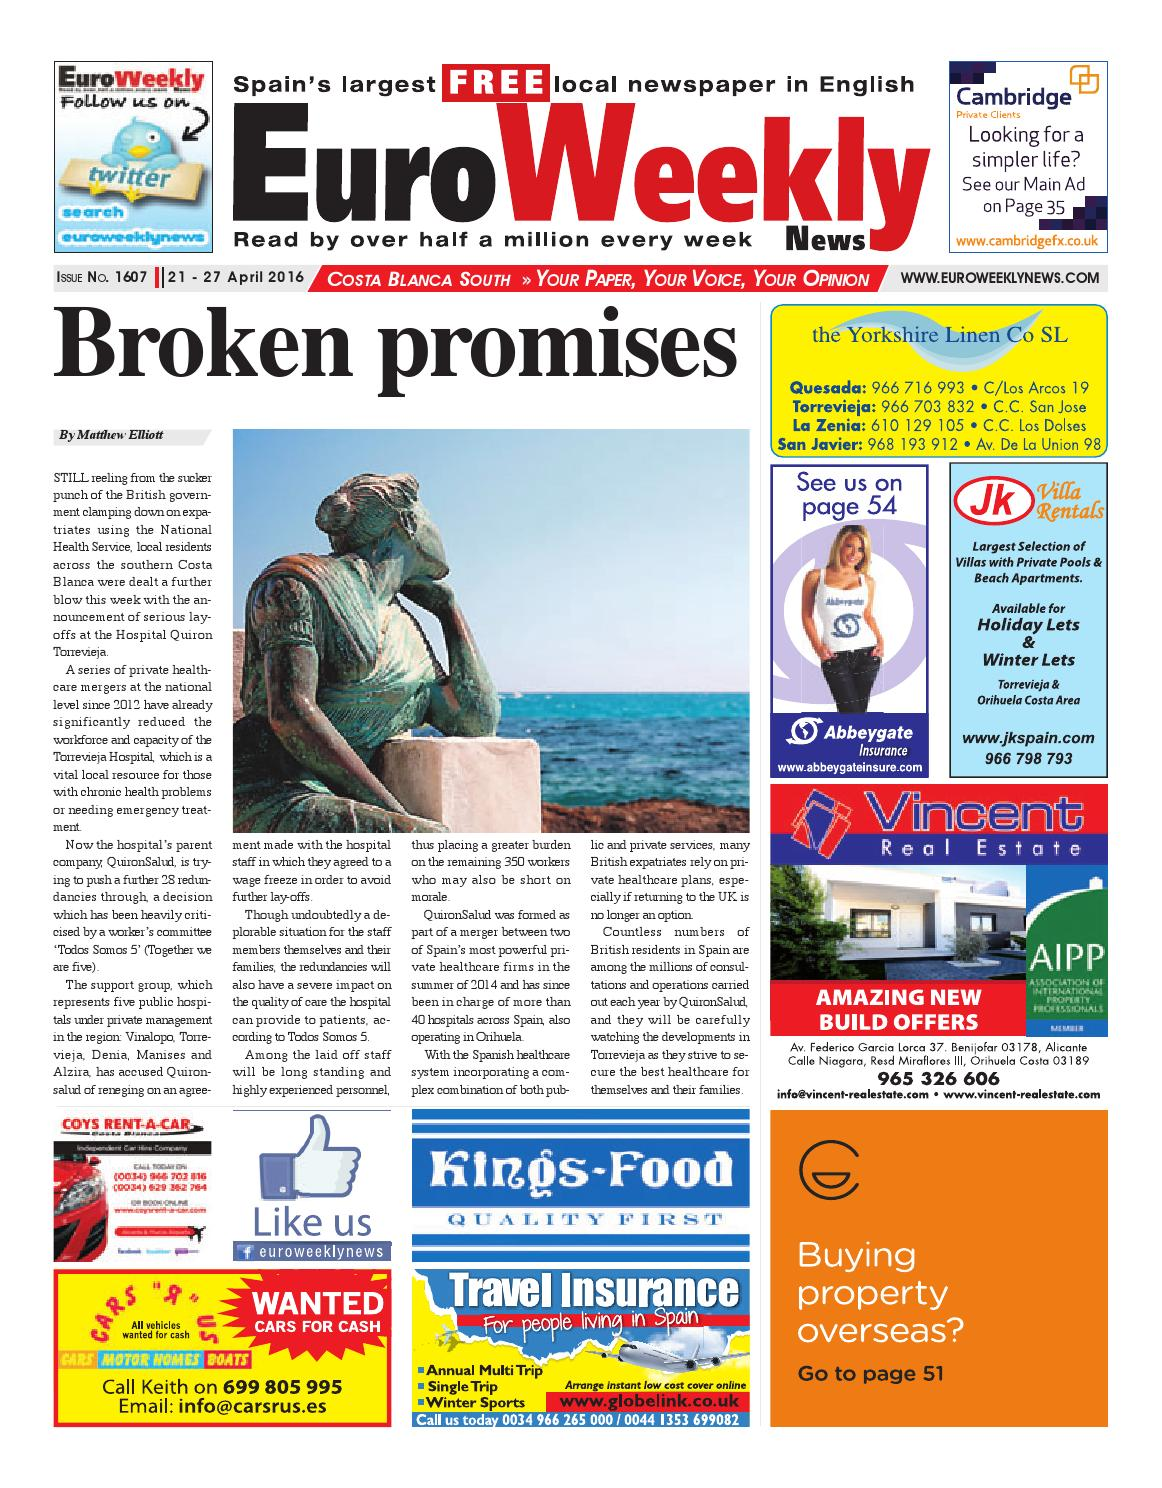 198a7f2899a Euro Weekly News - Costa Blanca South 21 - 27 April 2016 Issue 1607 by Euro  Weekly News Media S.A. - issuu